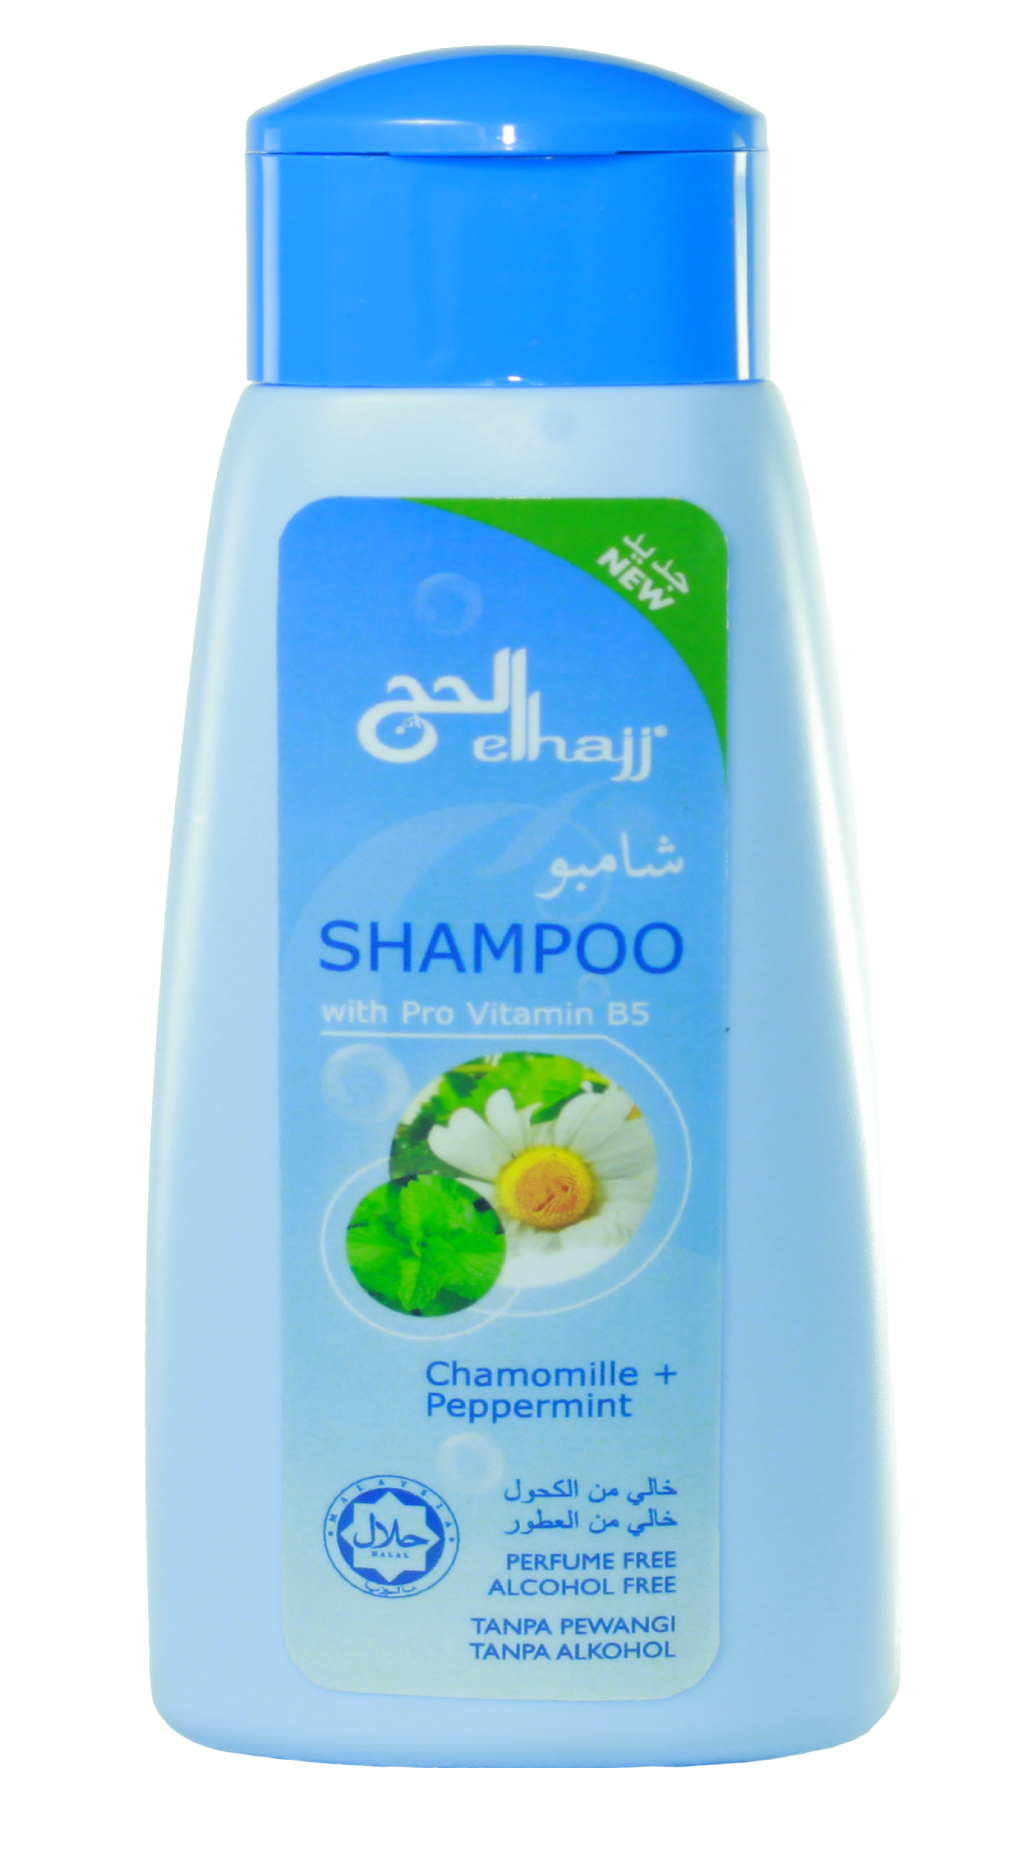 Download for free Shampoo PNG Image Without Background